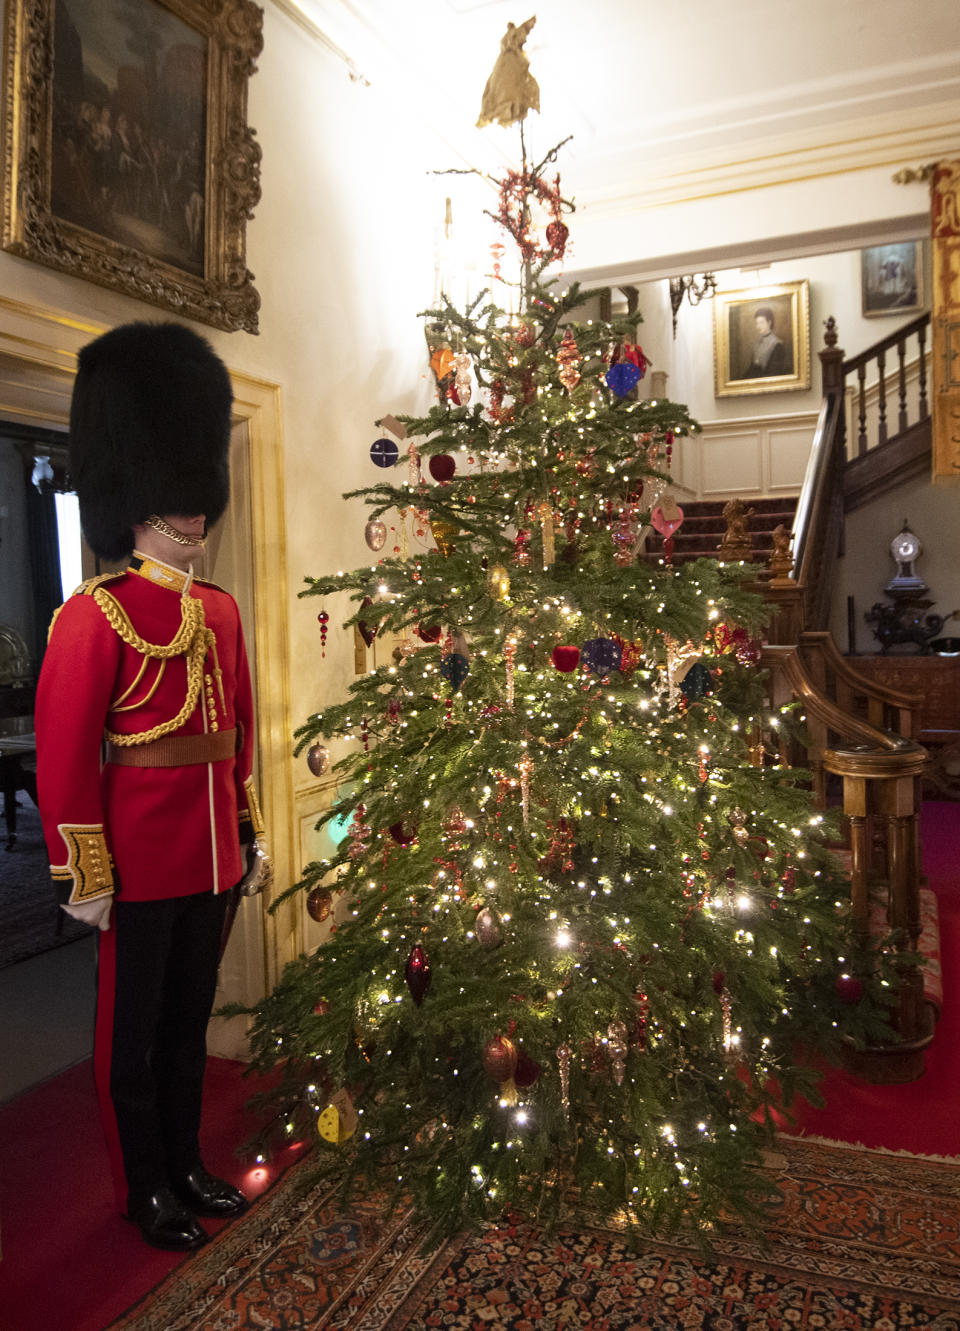 LONDON, ENGLAND - DECEMBER 16: Captain Charles Ross Assistant Equerry with the Clarence House Xmas tree and some of the baubles as the Duchess of Cornwall decorates the Clarence House Christmas Tree virtually with children from Helen & Douglas House Hospice, on December 16, 2020 in London, England. (Photo by Eddie Mulholland - WPA Pool/Getty Images)